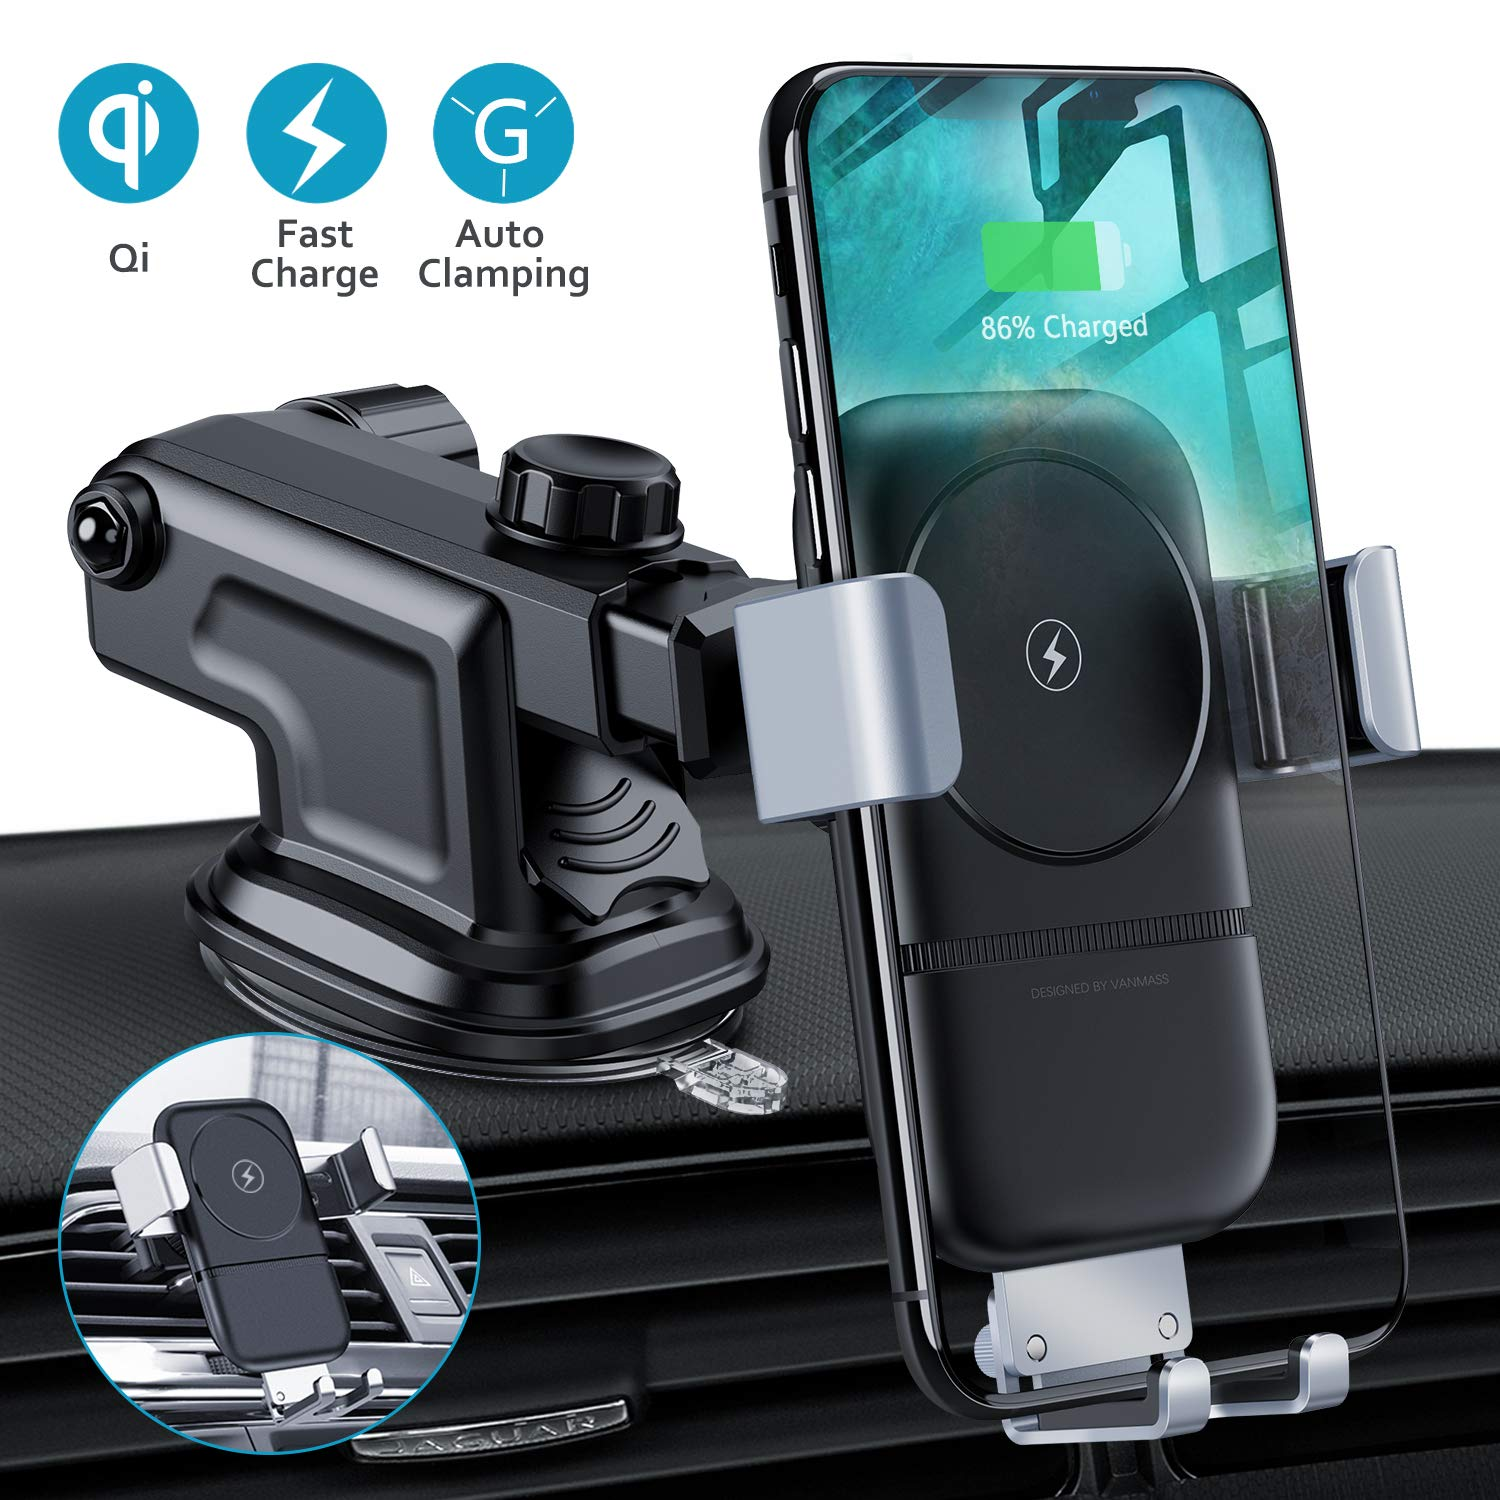 VANMASS Wireless Car Charger, 10W Fast Charging Gravity Car Mount, Air Vent Windshield Dashboard Phone Holder Compatible with iPhone Xs MAX/XS/XR/X/8/8+, Samsung S10/S10+/S9/S9+/S8/S8+/S7, Pixel/LG by VANMASS